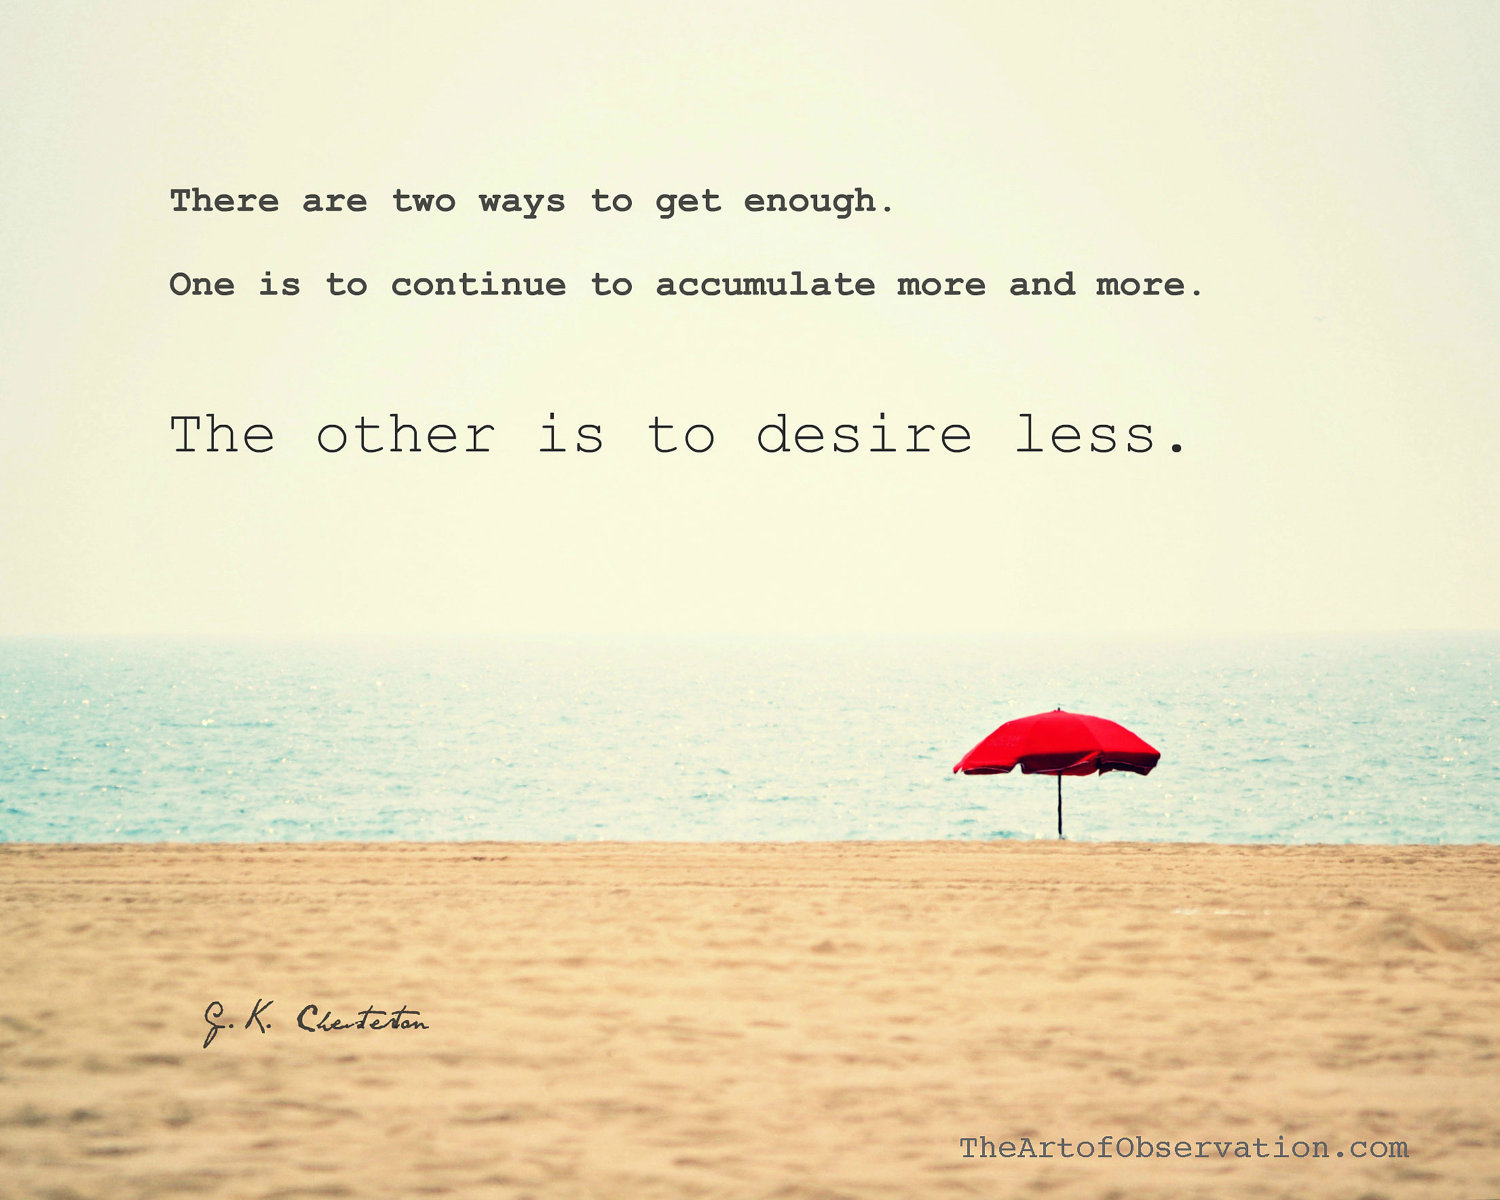 beach with umbrella and G.K Chesterton quote. There are two ways to get enough. One is to accumulate more and more. The other is to desire less.